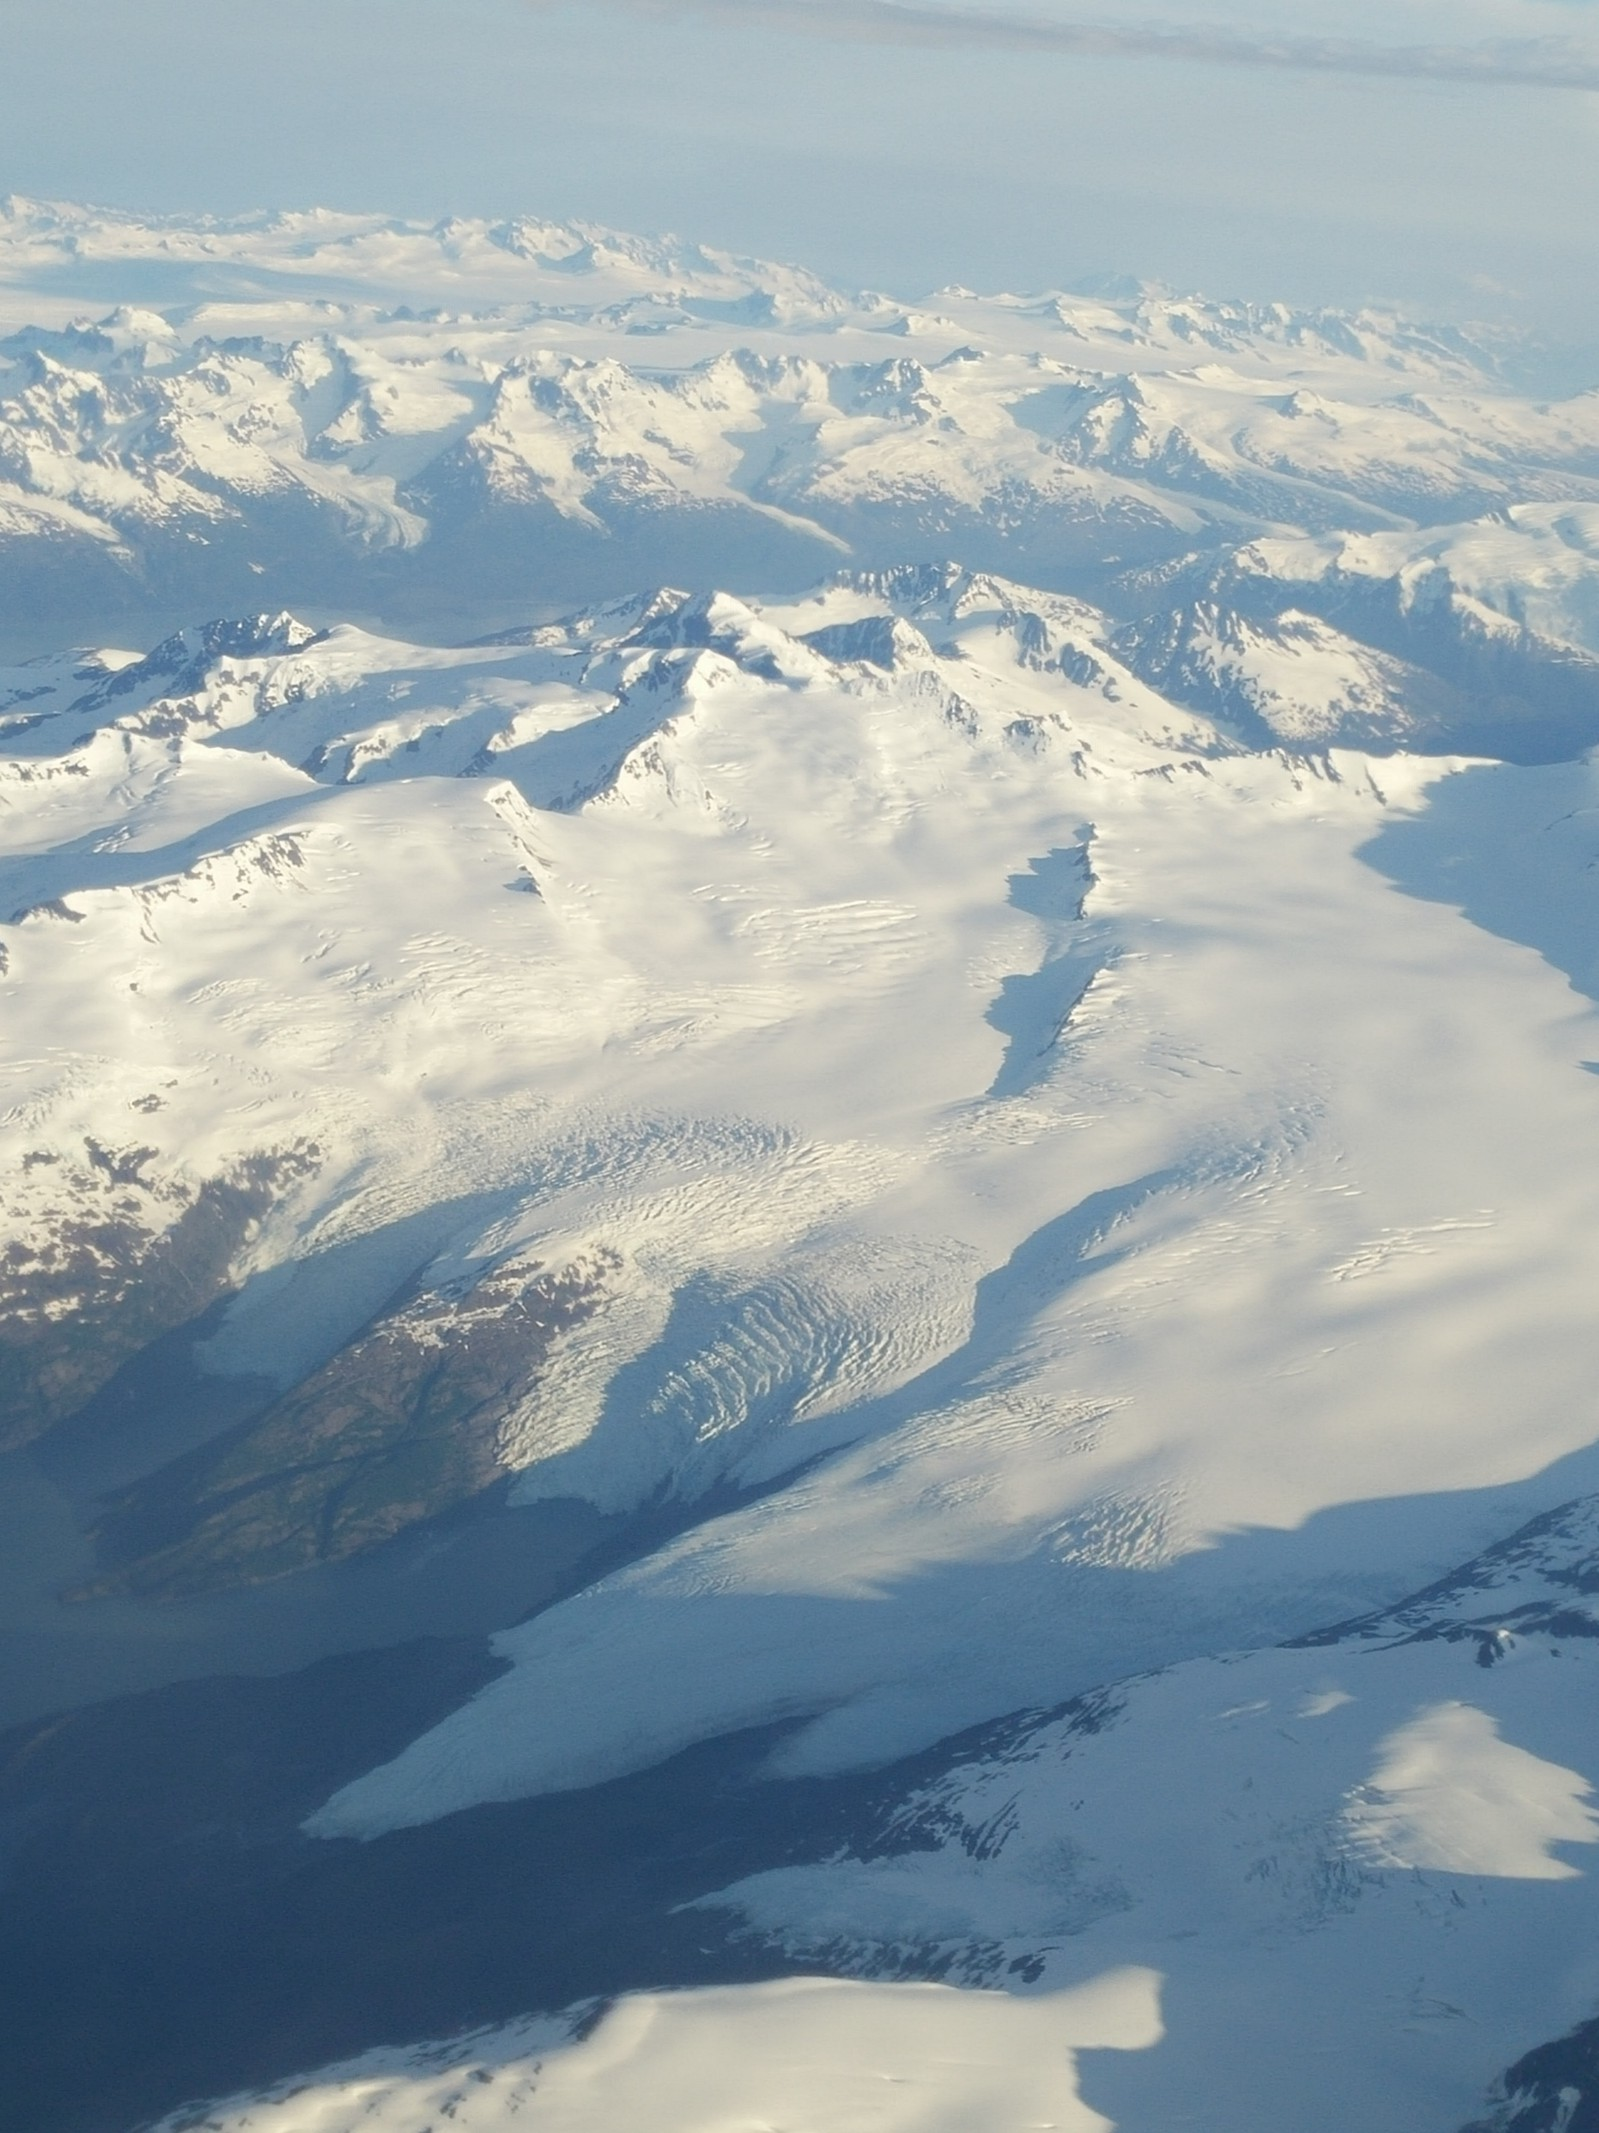 This pitcher of cream spilled over mountain tops is what you see just before you land in Anchorage, Alaska.